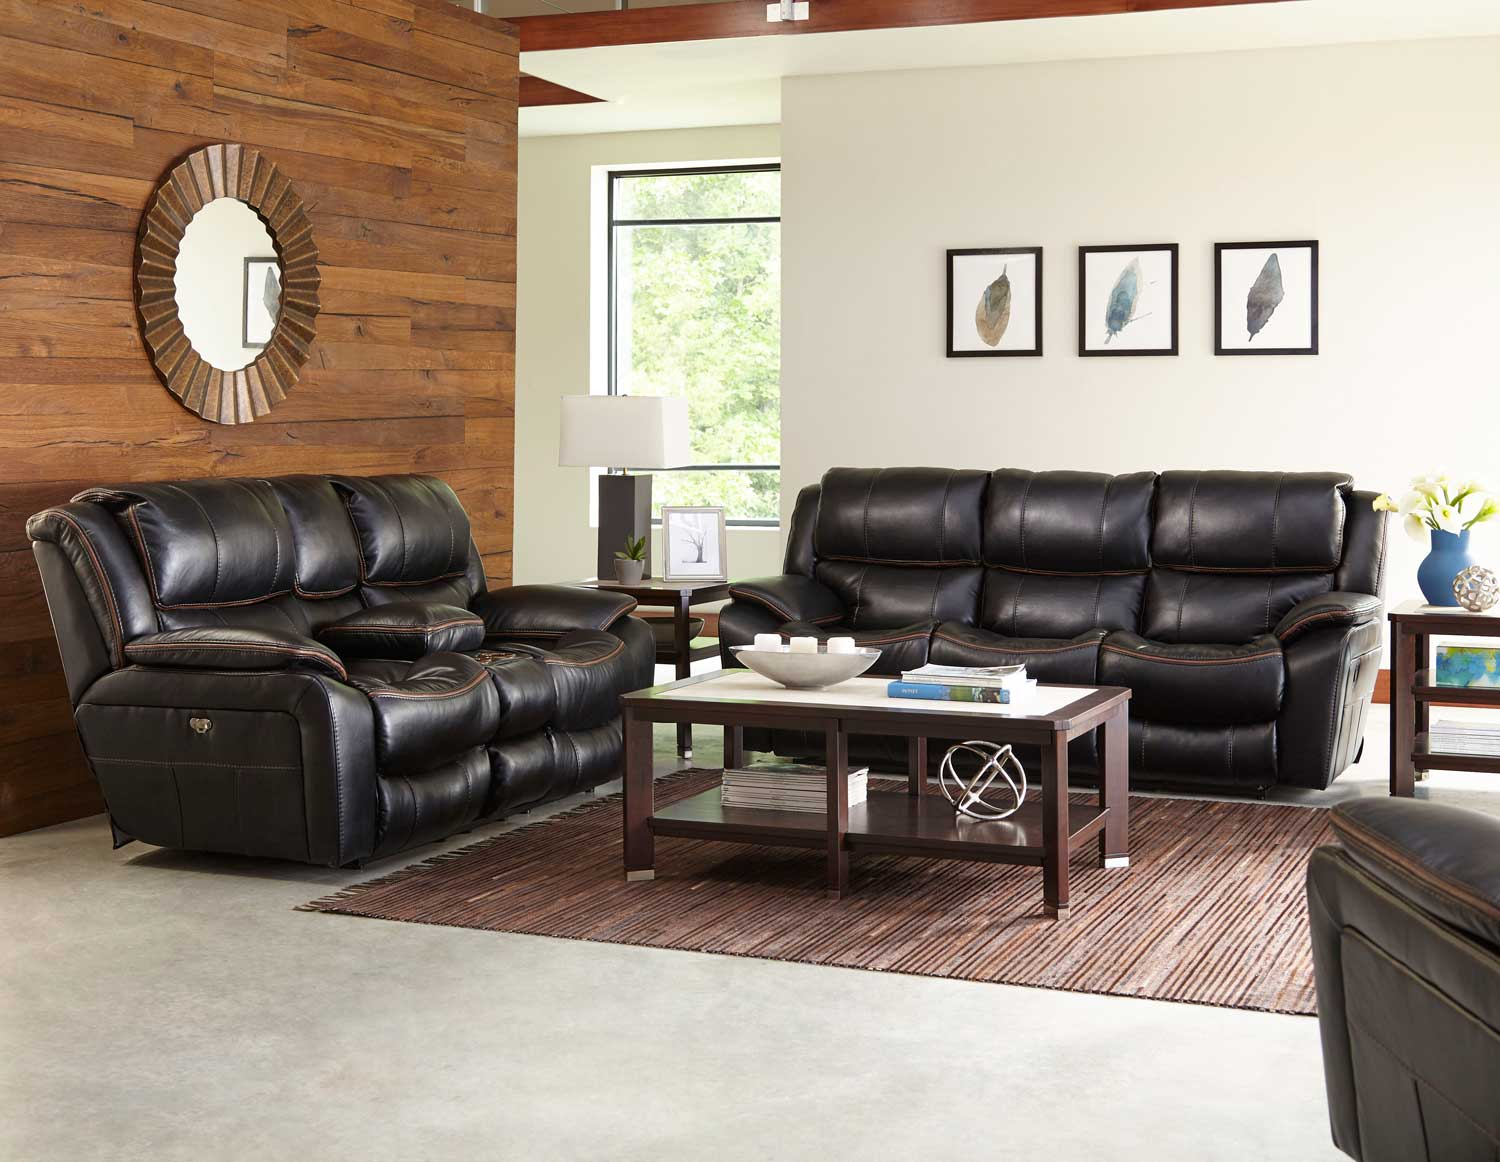 Elegant CatNapper Beckett Reclining Sofa Set   Black